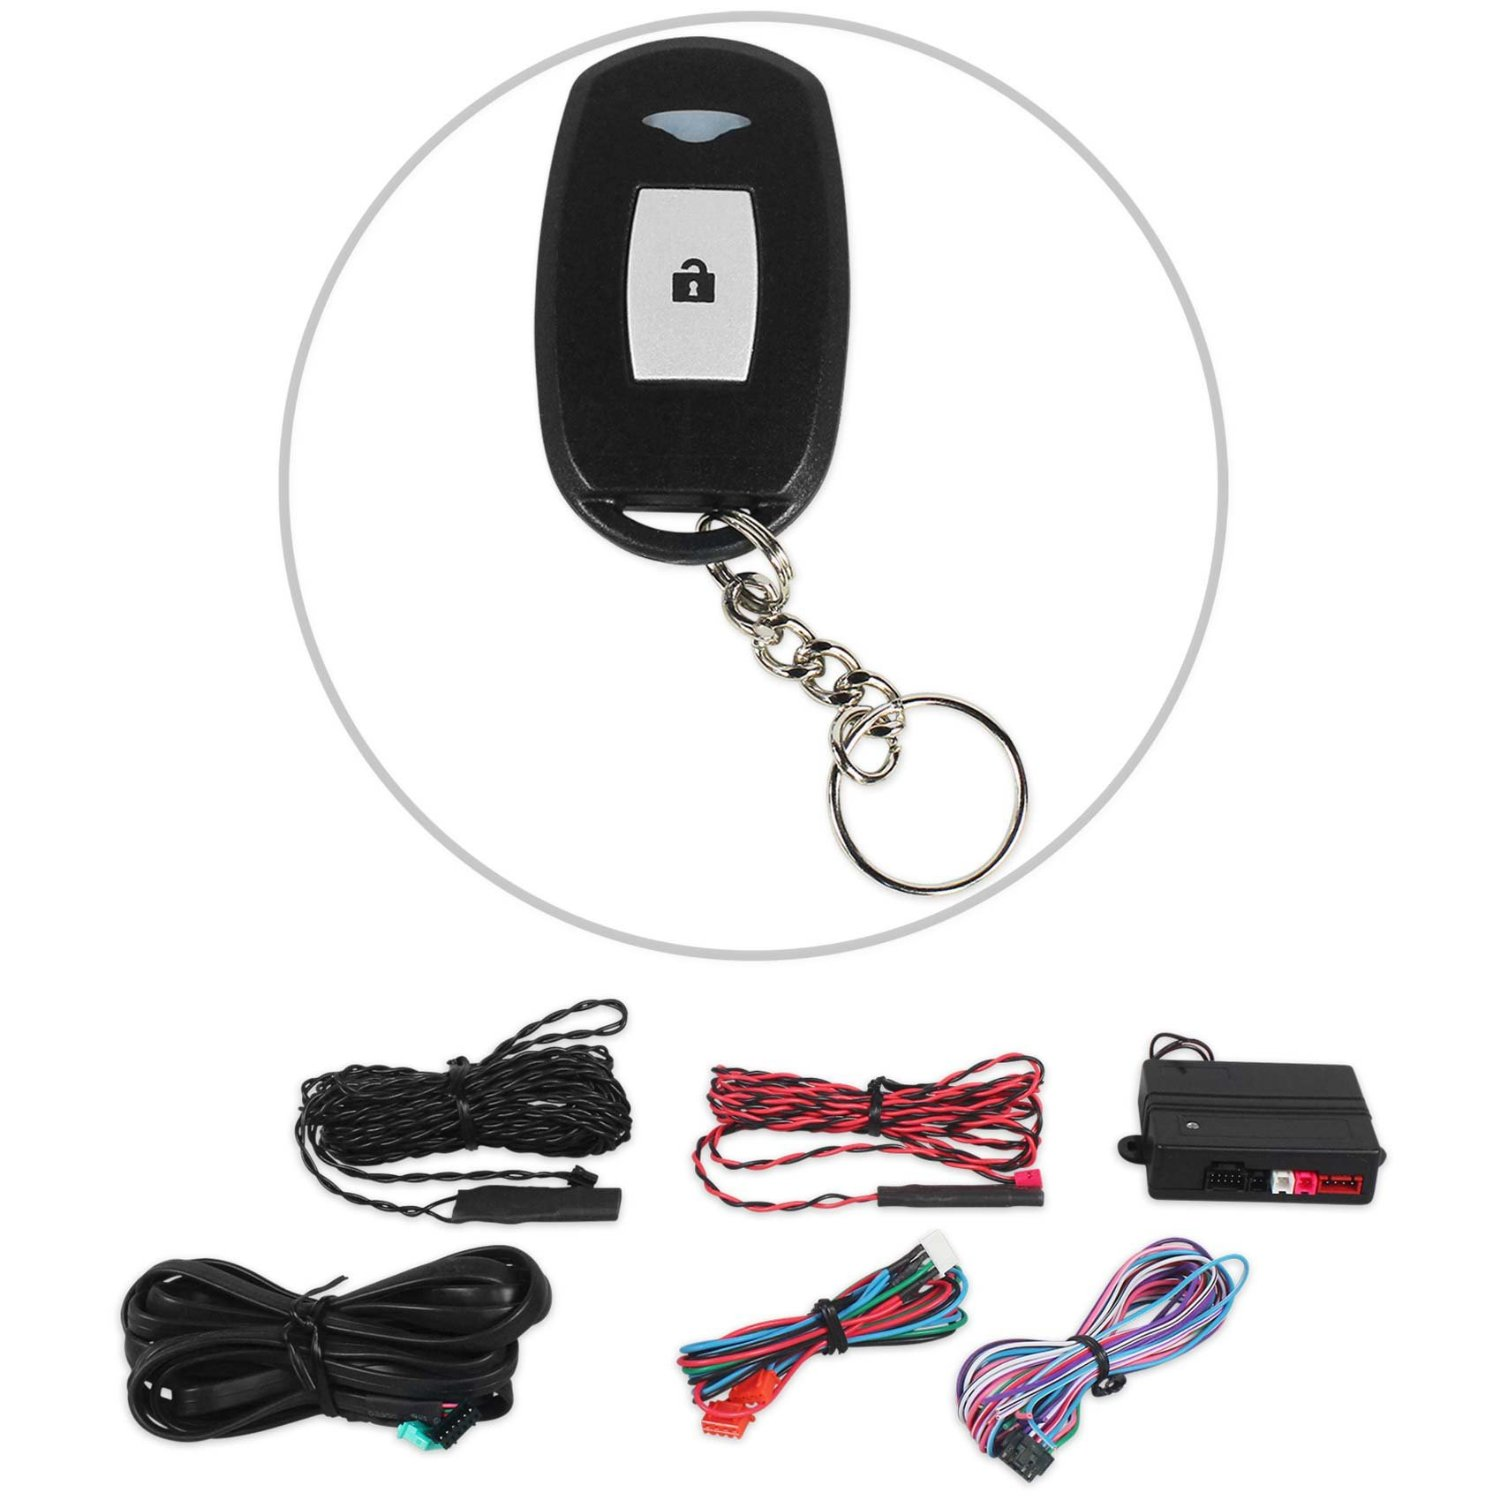 Directed Electronics Vehicle Keyless Entry Systems